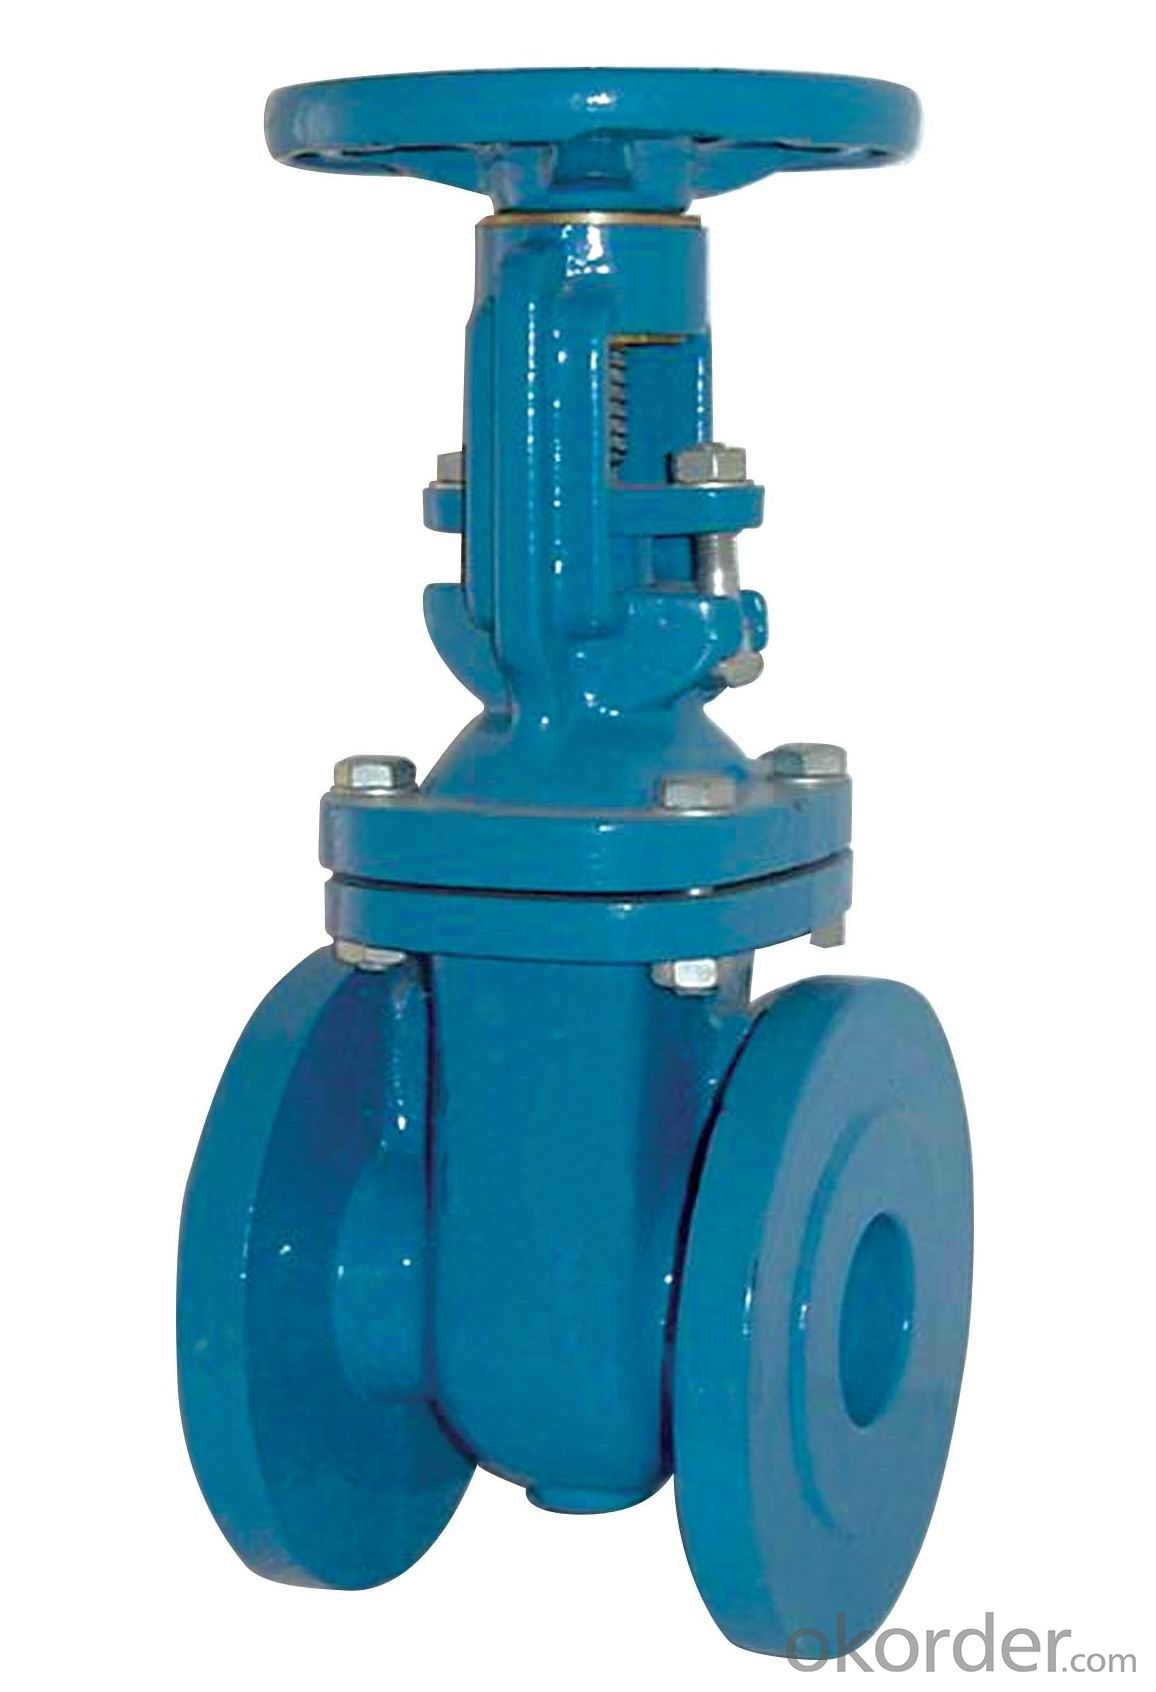 Valve with Competitive Price with 60year Old Valve Manufacturer